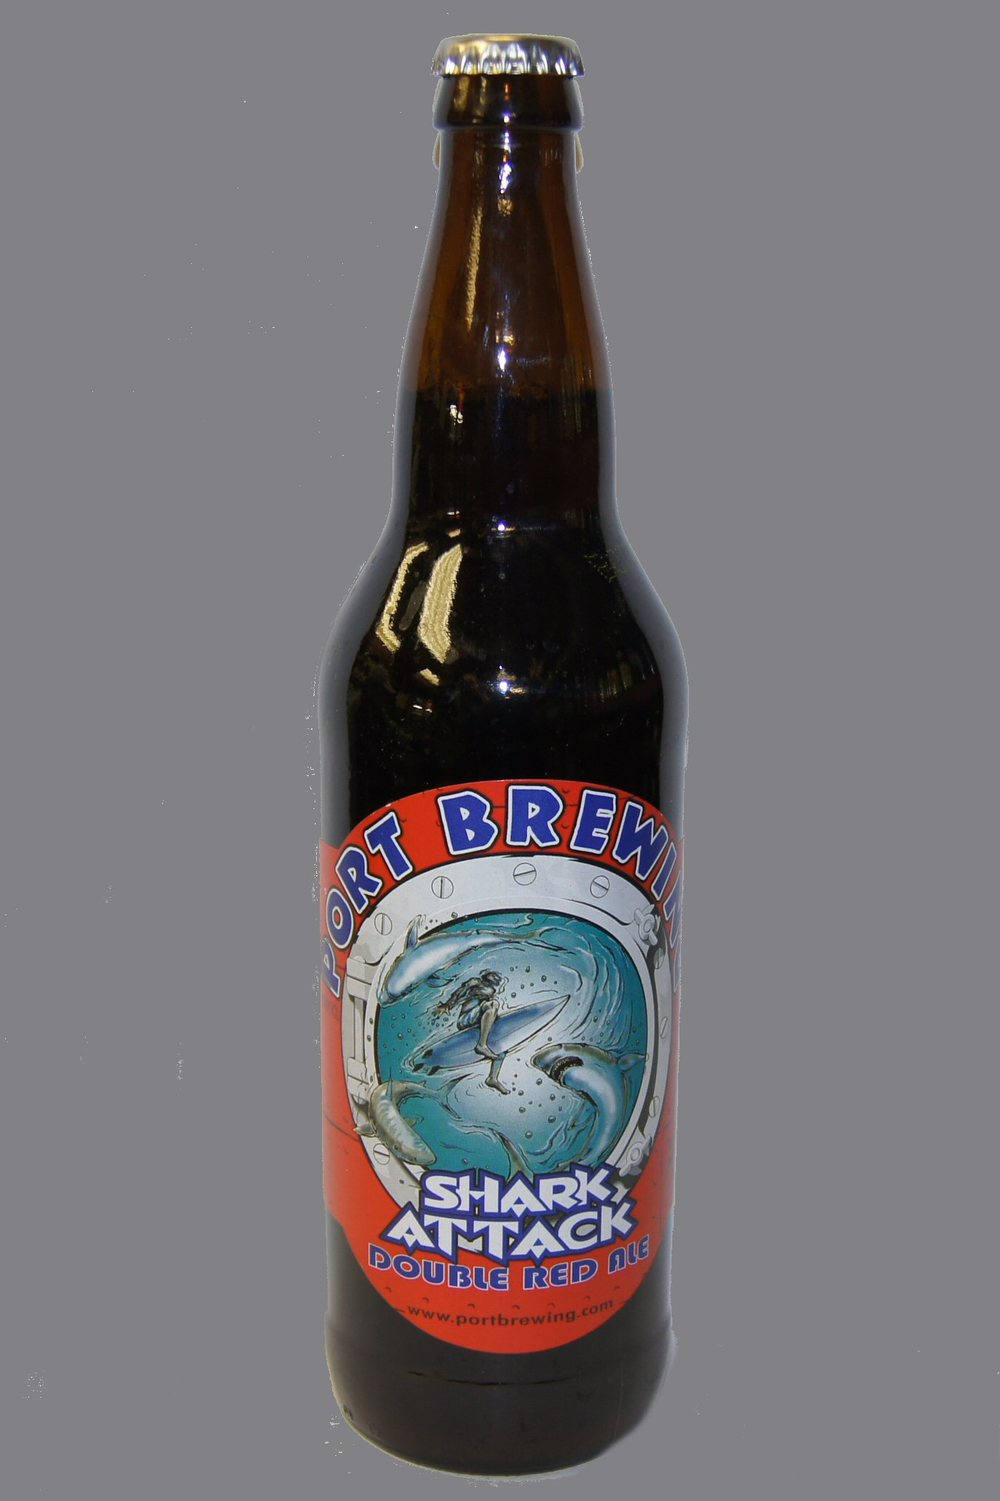 PORT BREWING -Shark Attack Double Red Ale.jpg